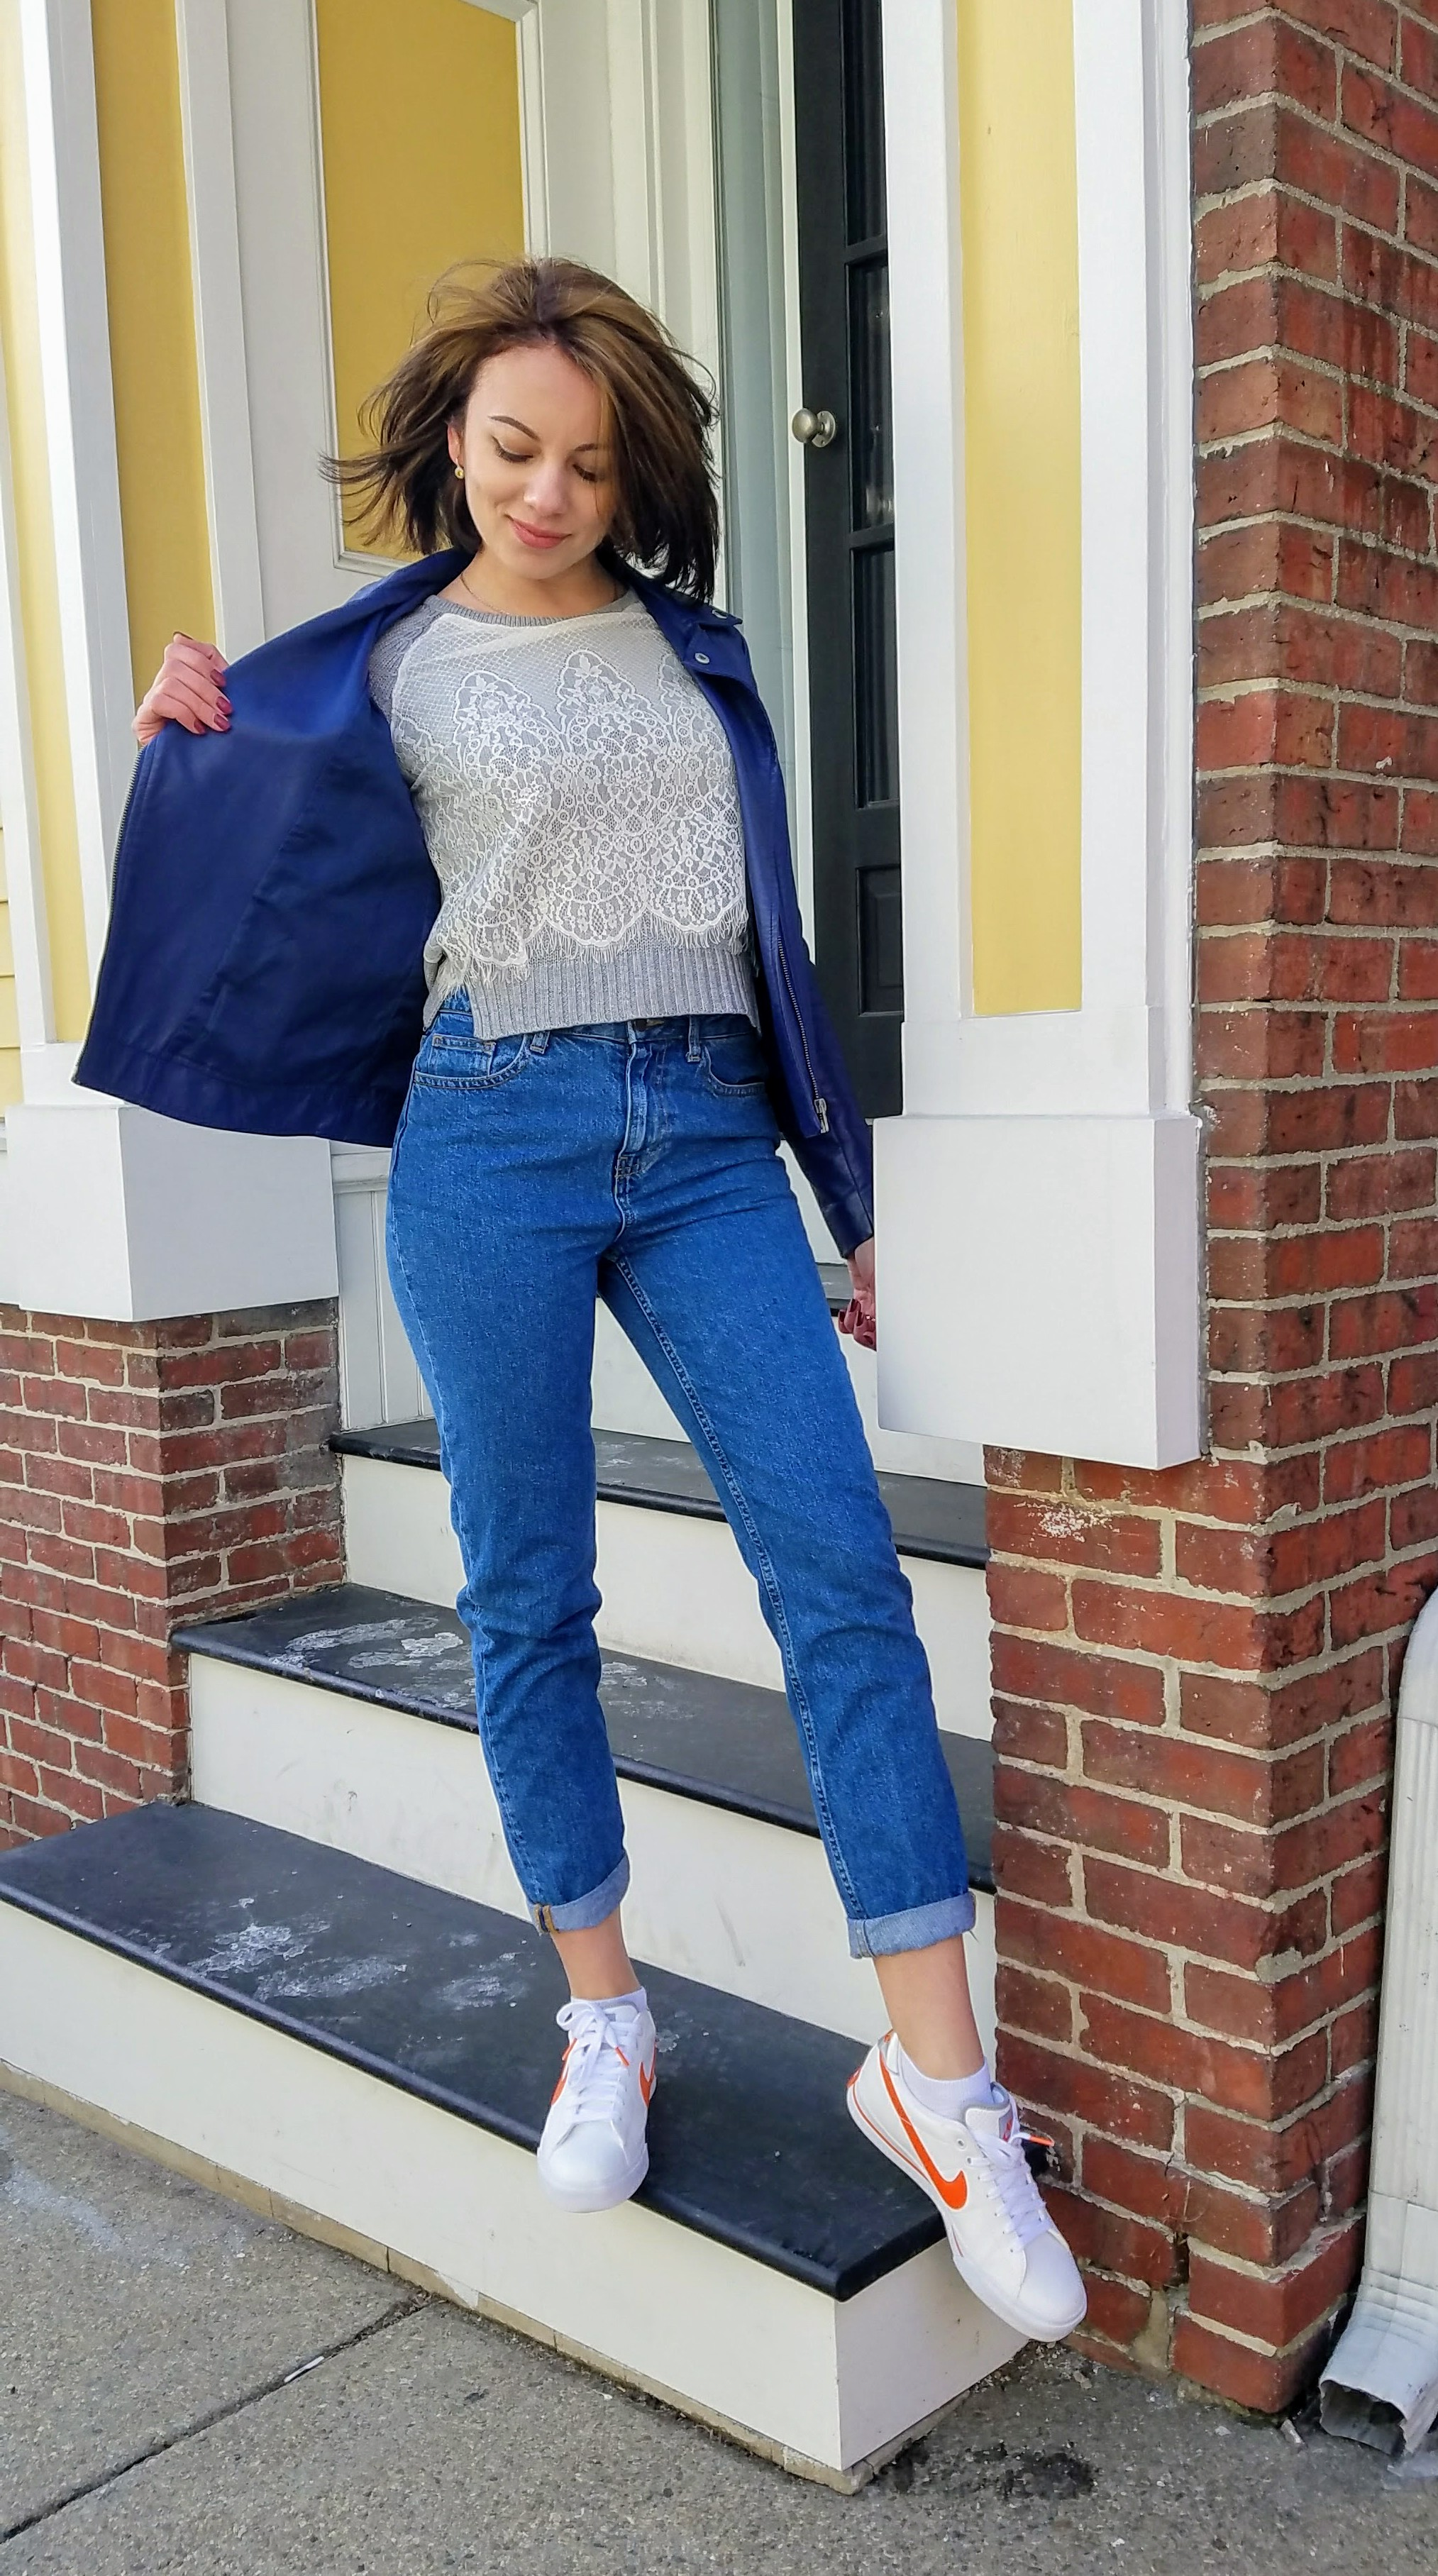 Open blue jacket, gray sweater, mom jeans, Nike sneakers outfit